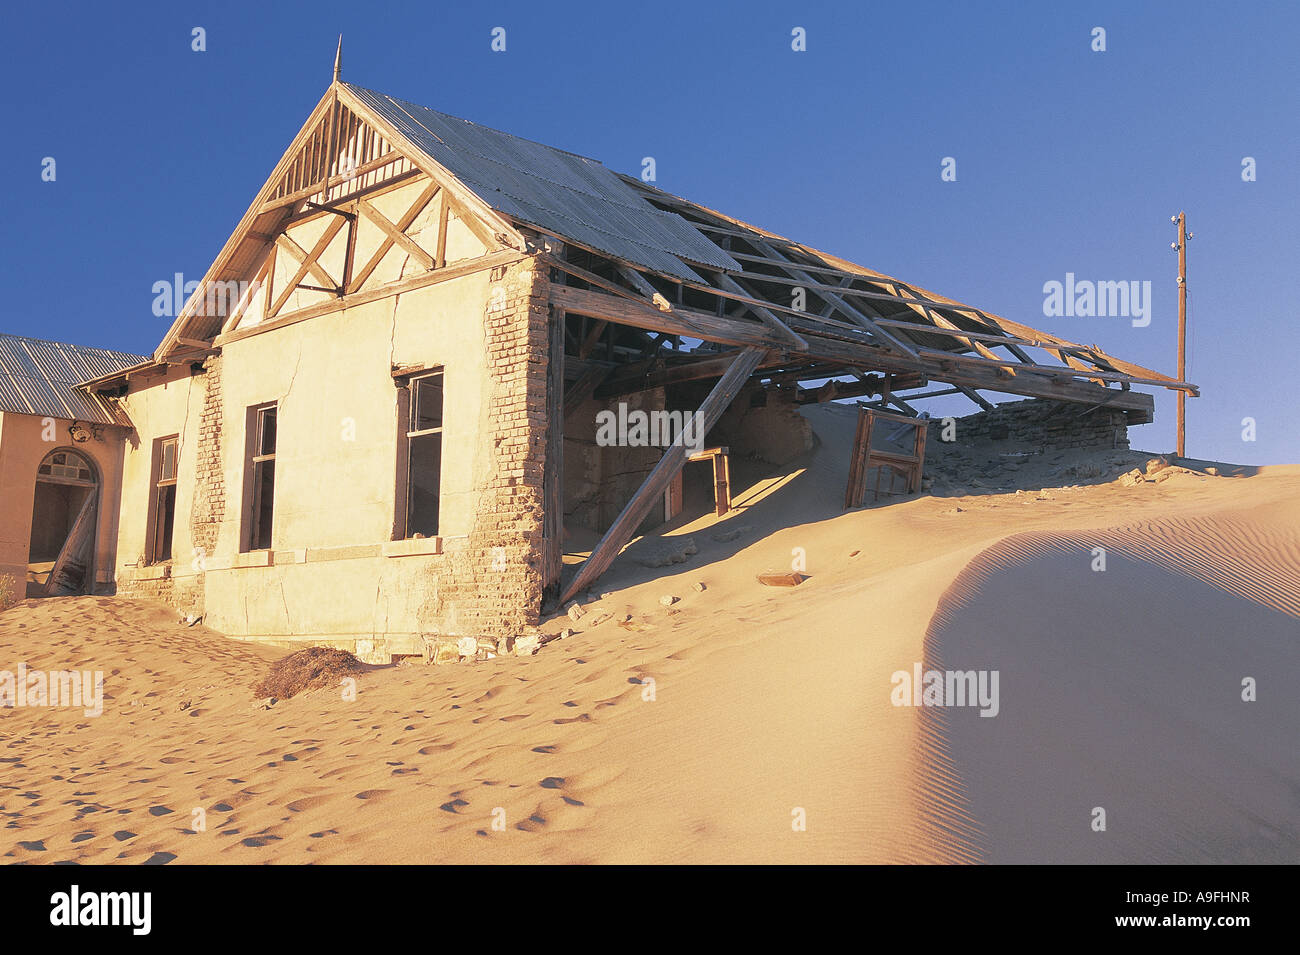 Abandoned and wrecked house in the ghost mining town of Kolmanskop Namibia south west Africa - Stock Image